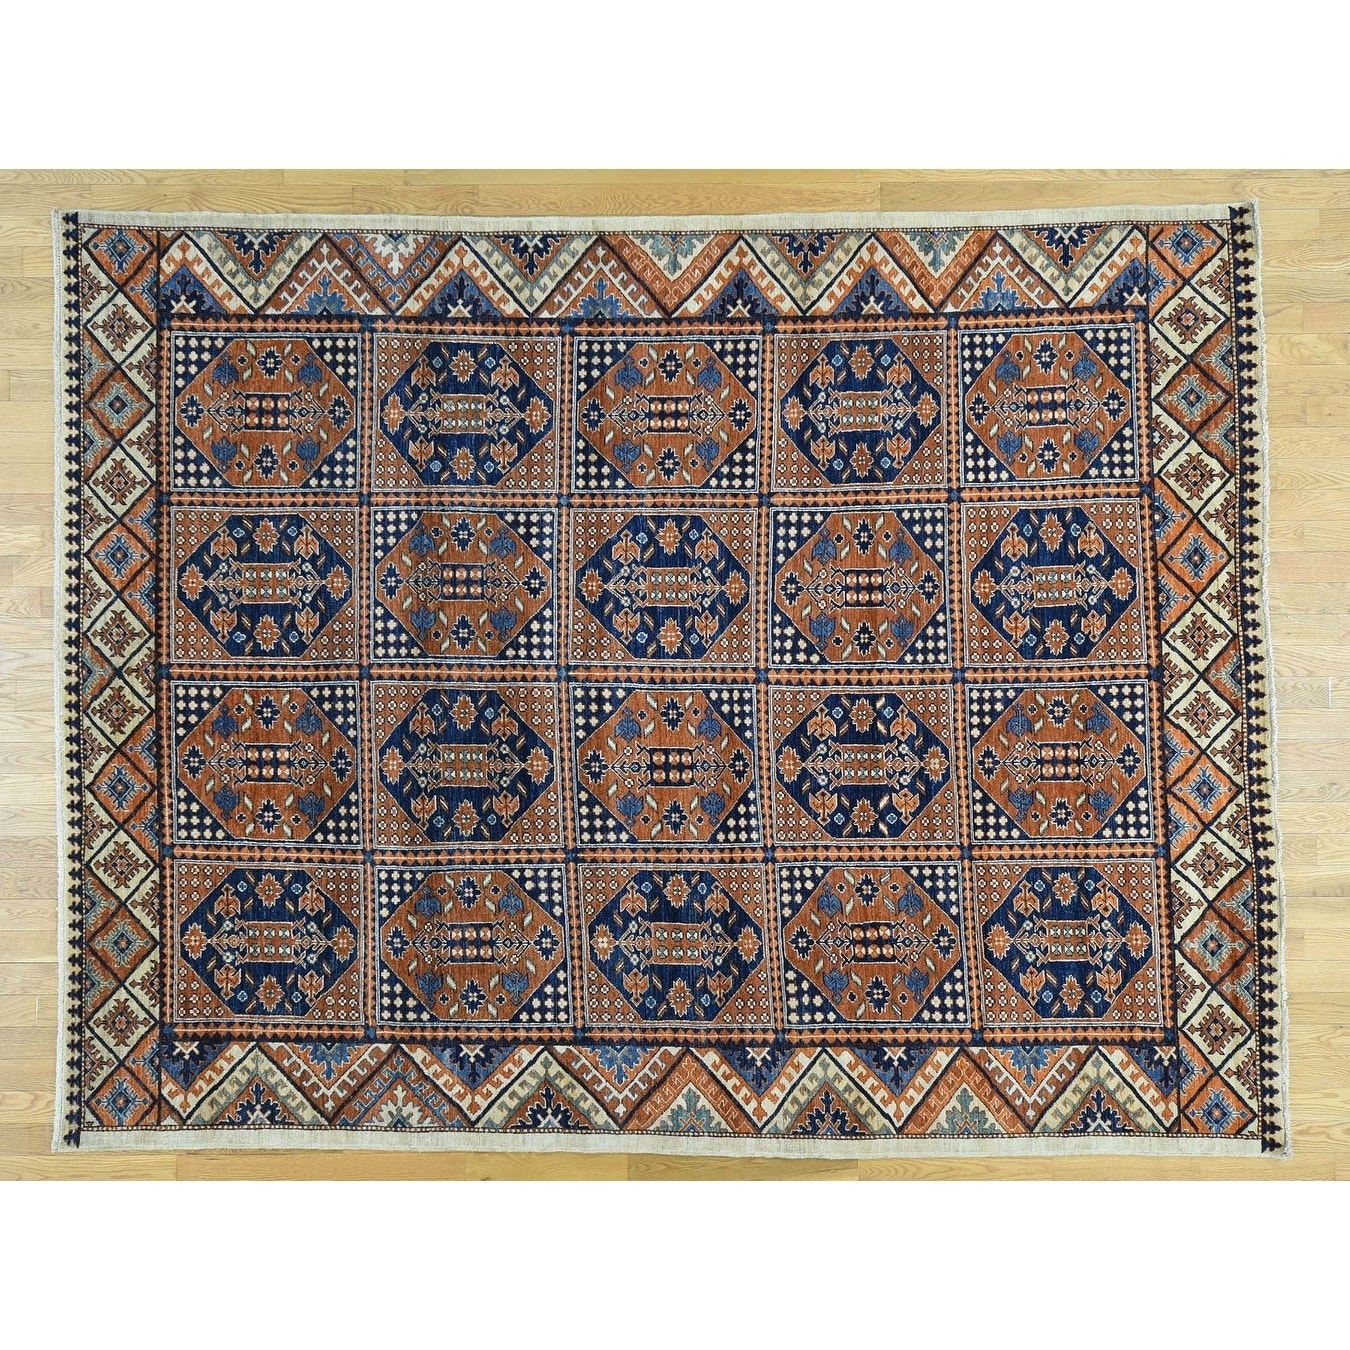 Hand Knotted Brown Tribal & Geometric with Wool Oriental Rug - 8'2 x 10'6